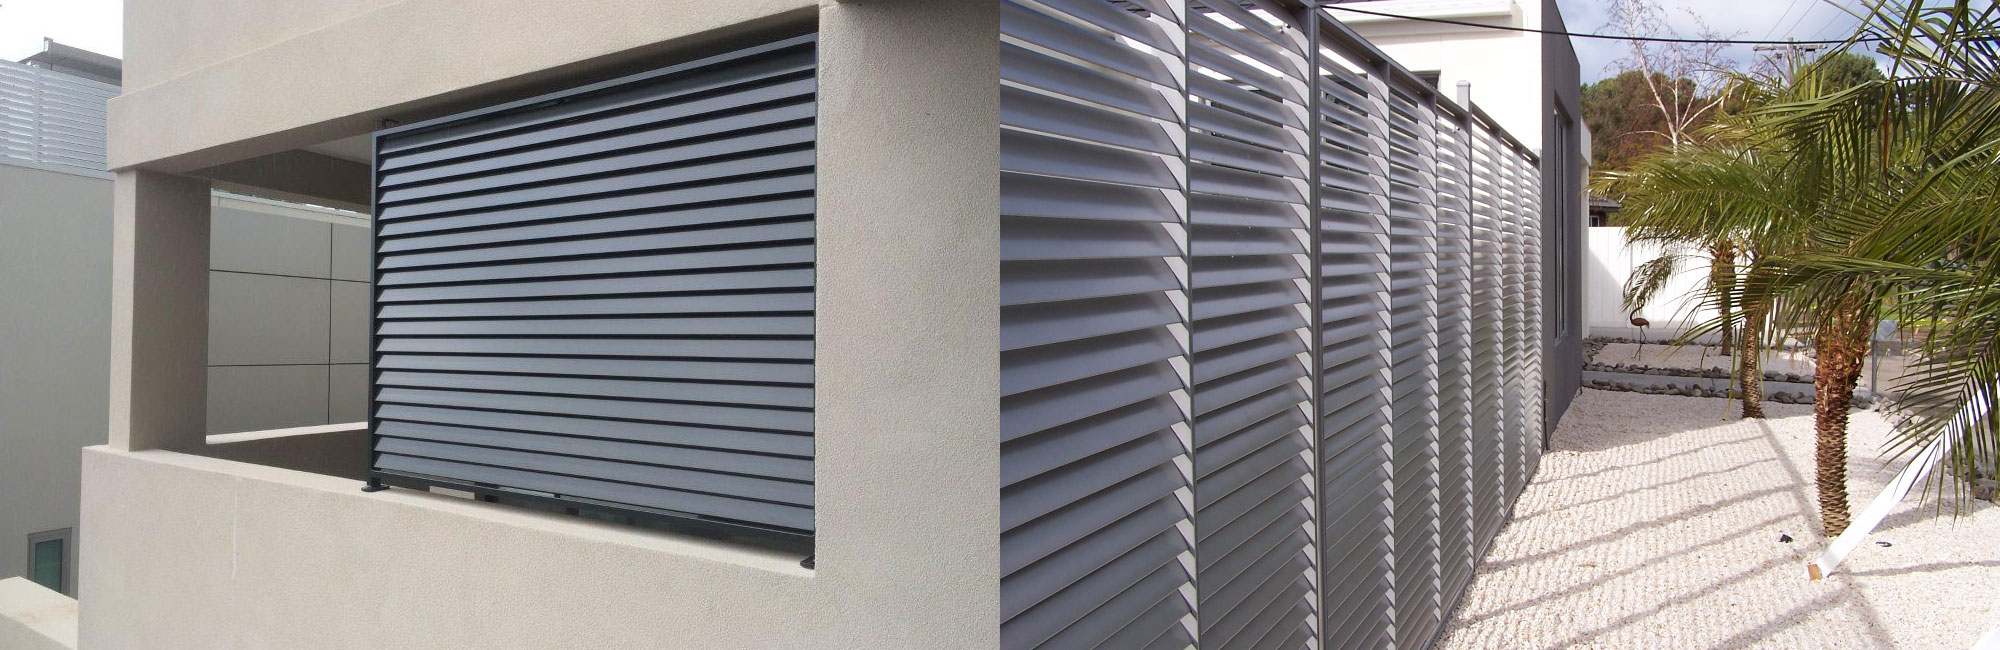 Aluminium Louvres Panels Amp Screens Melbourne Glass